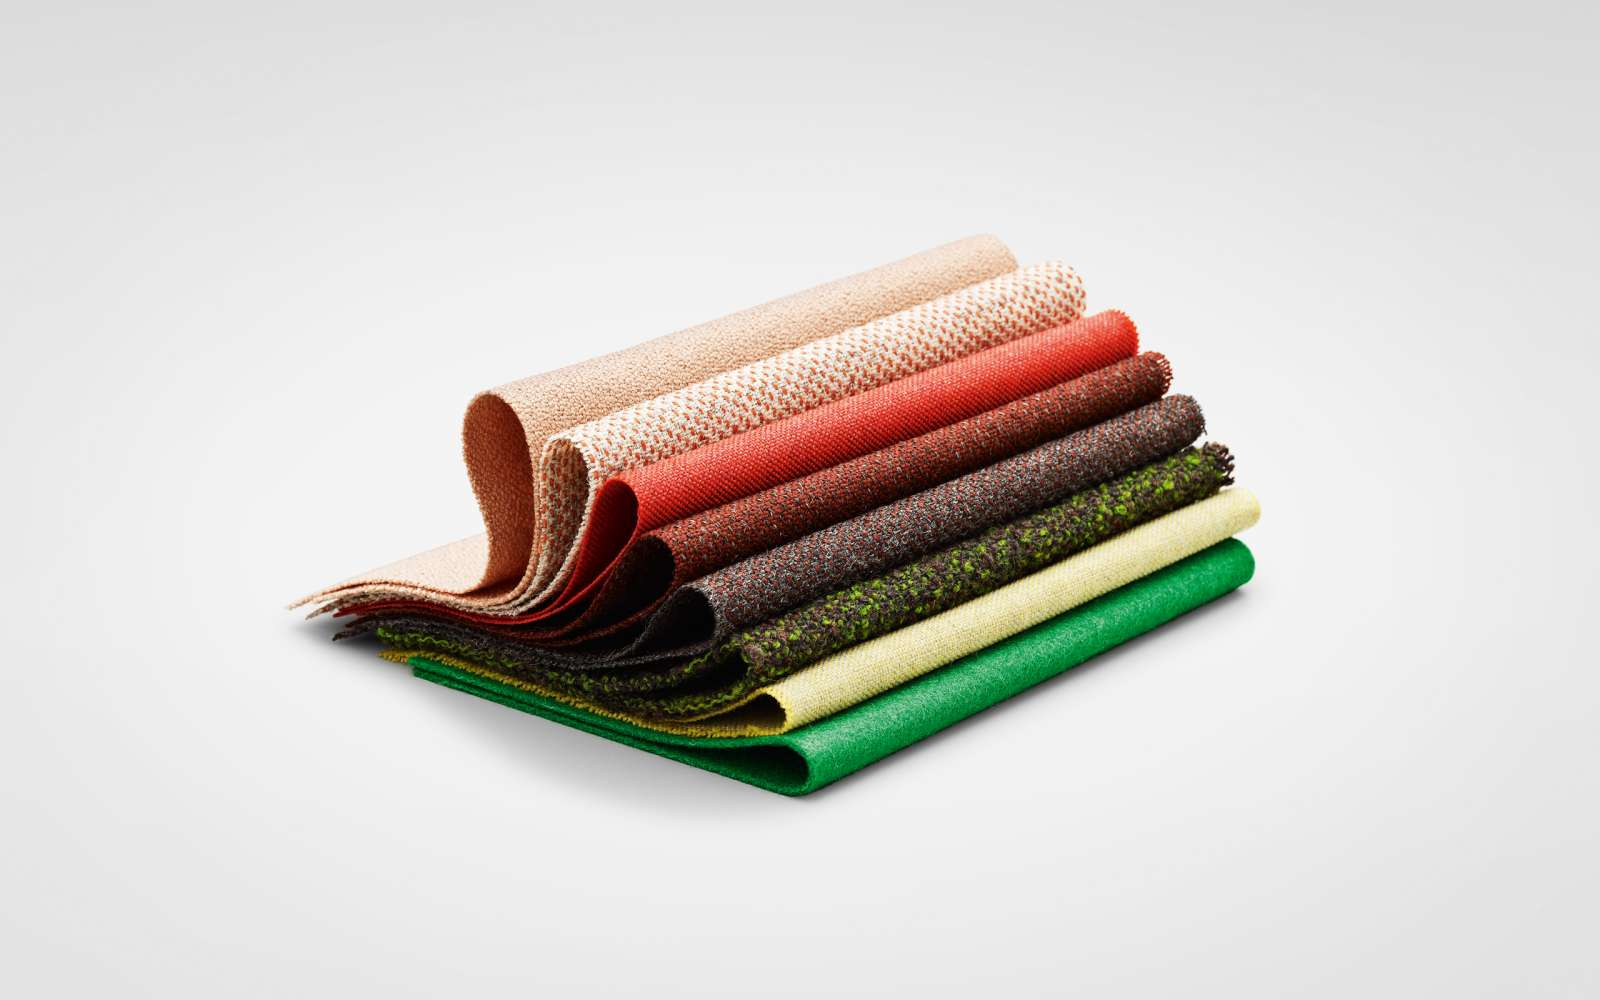 ca-kvadrat-products-002